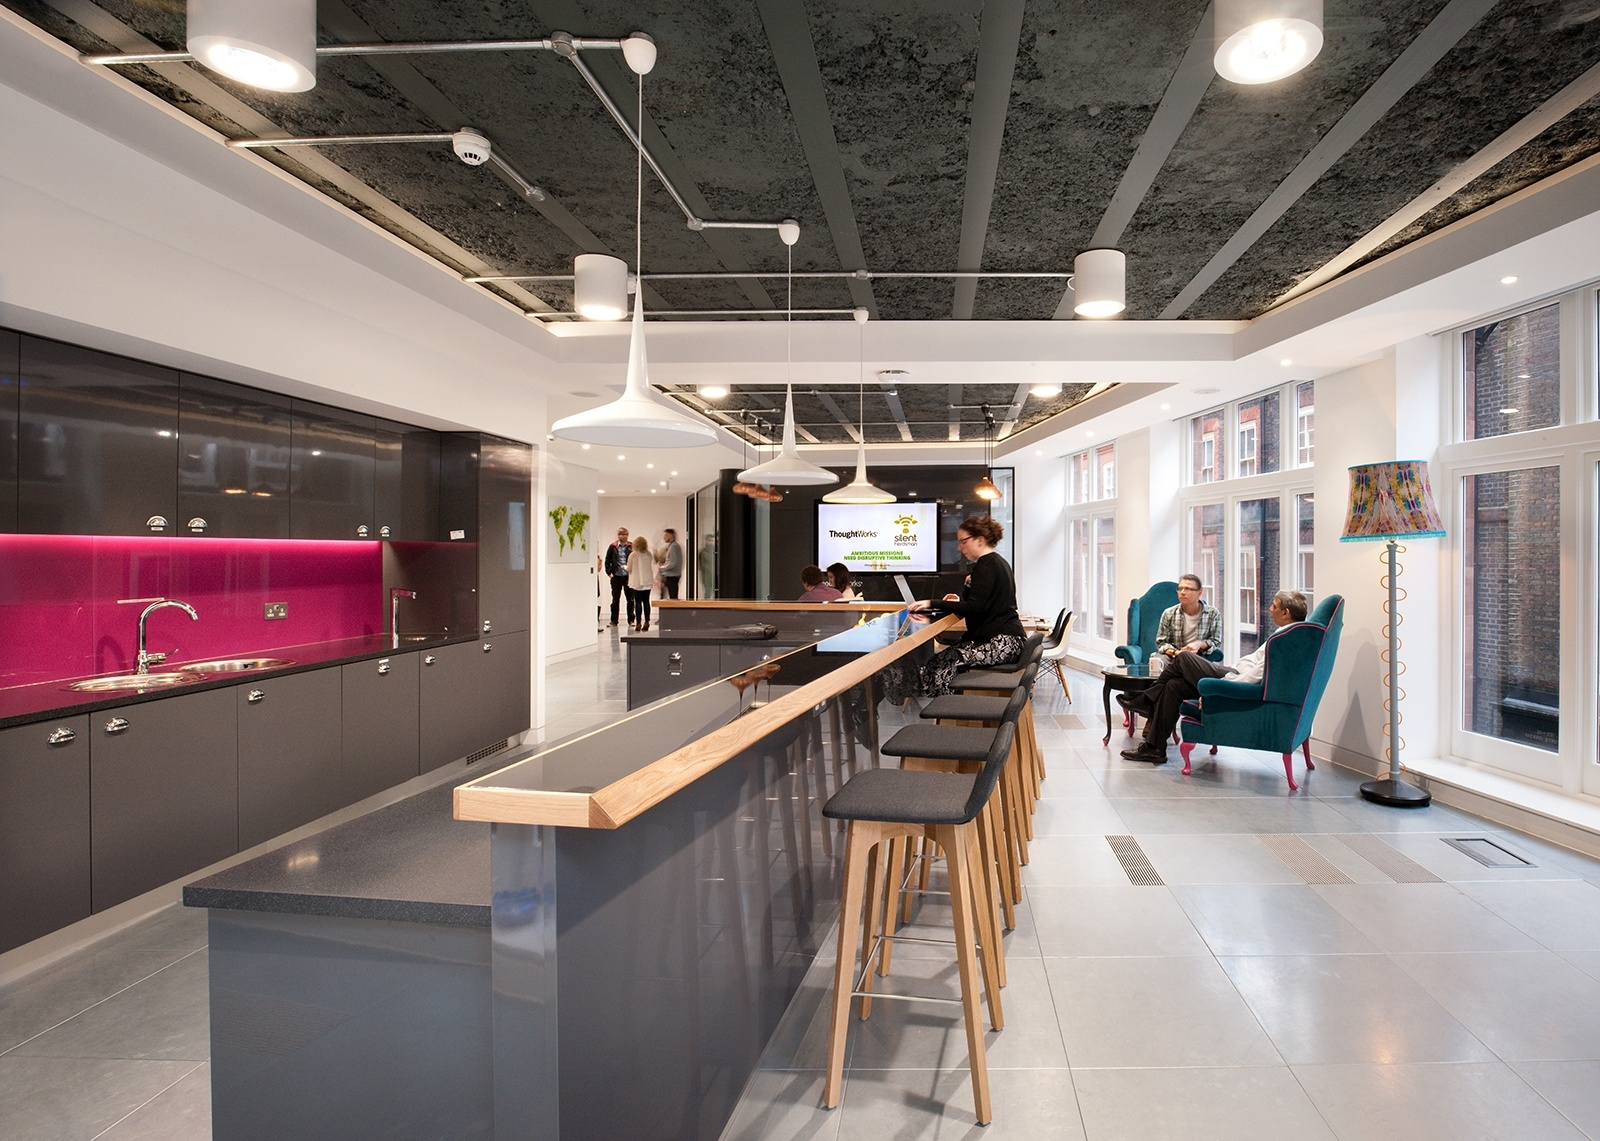 A look inside thoughtworks cool london office officelovin 39 200 sqft office interior